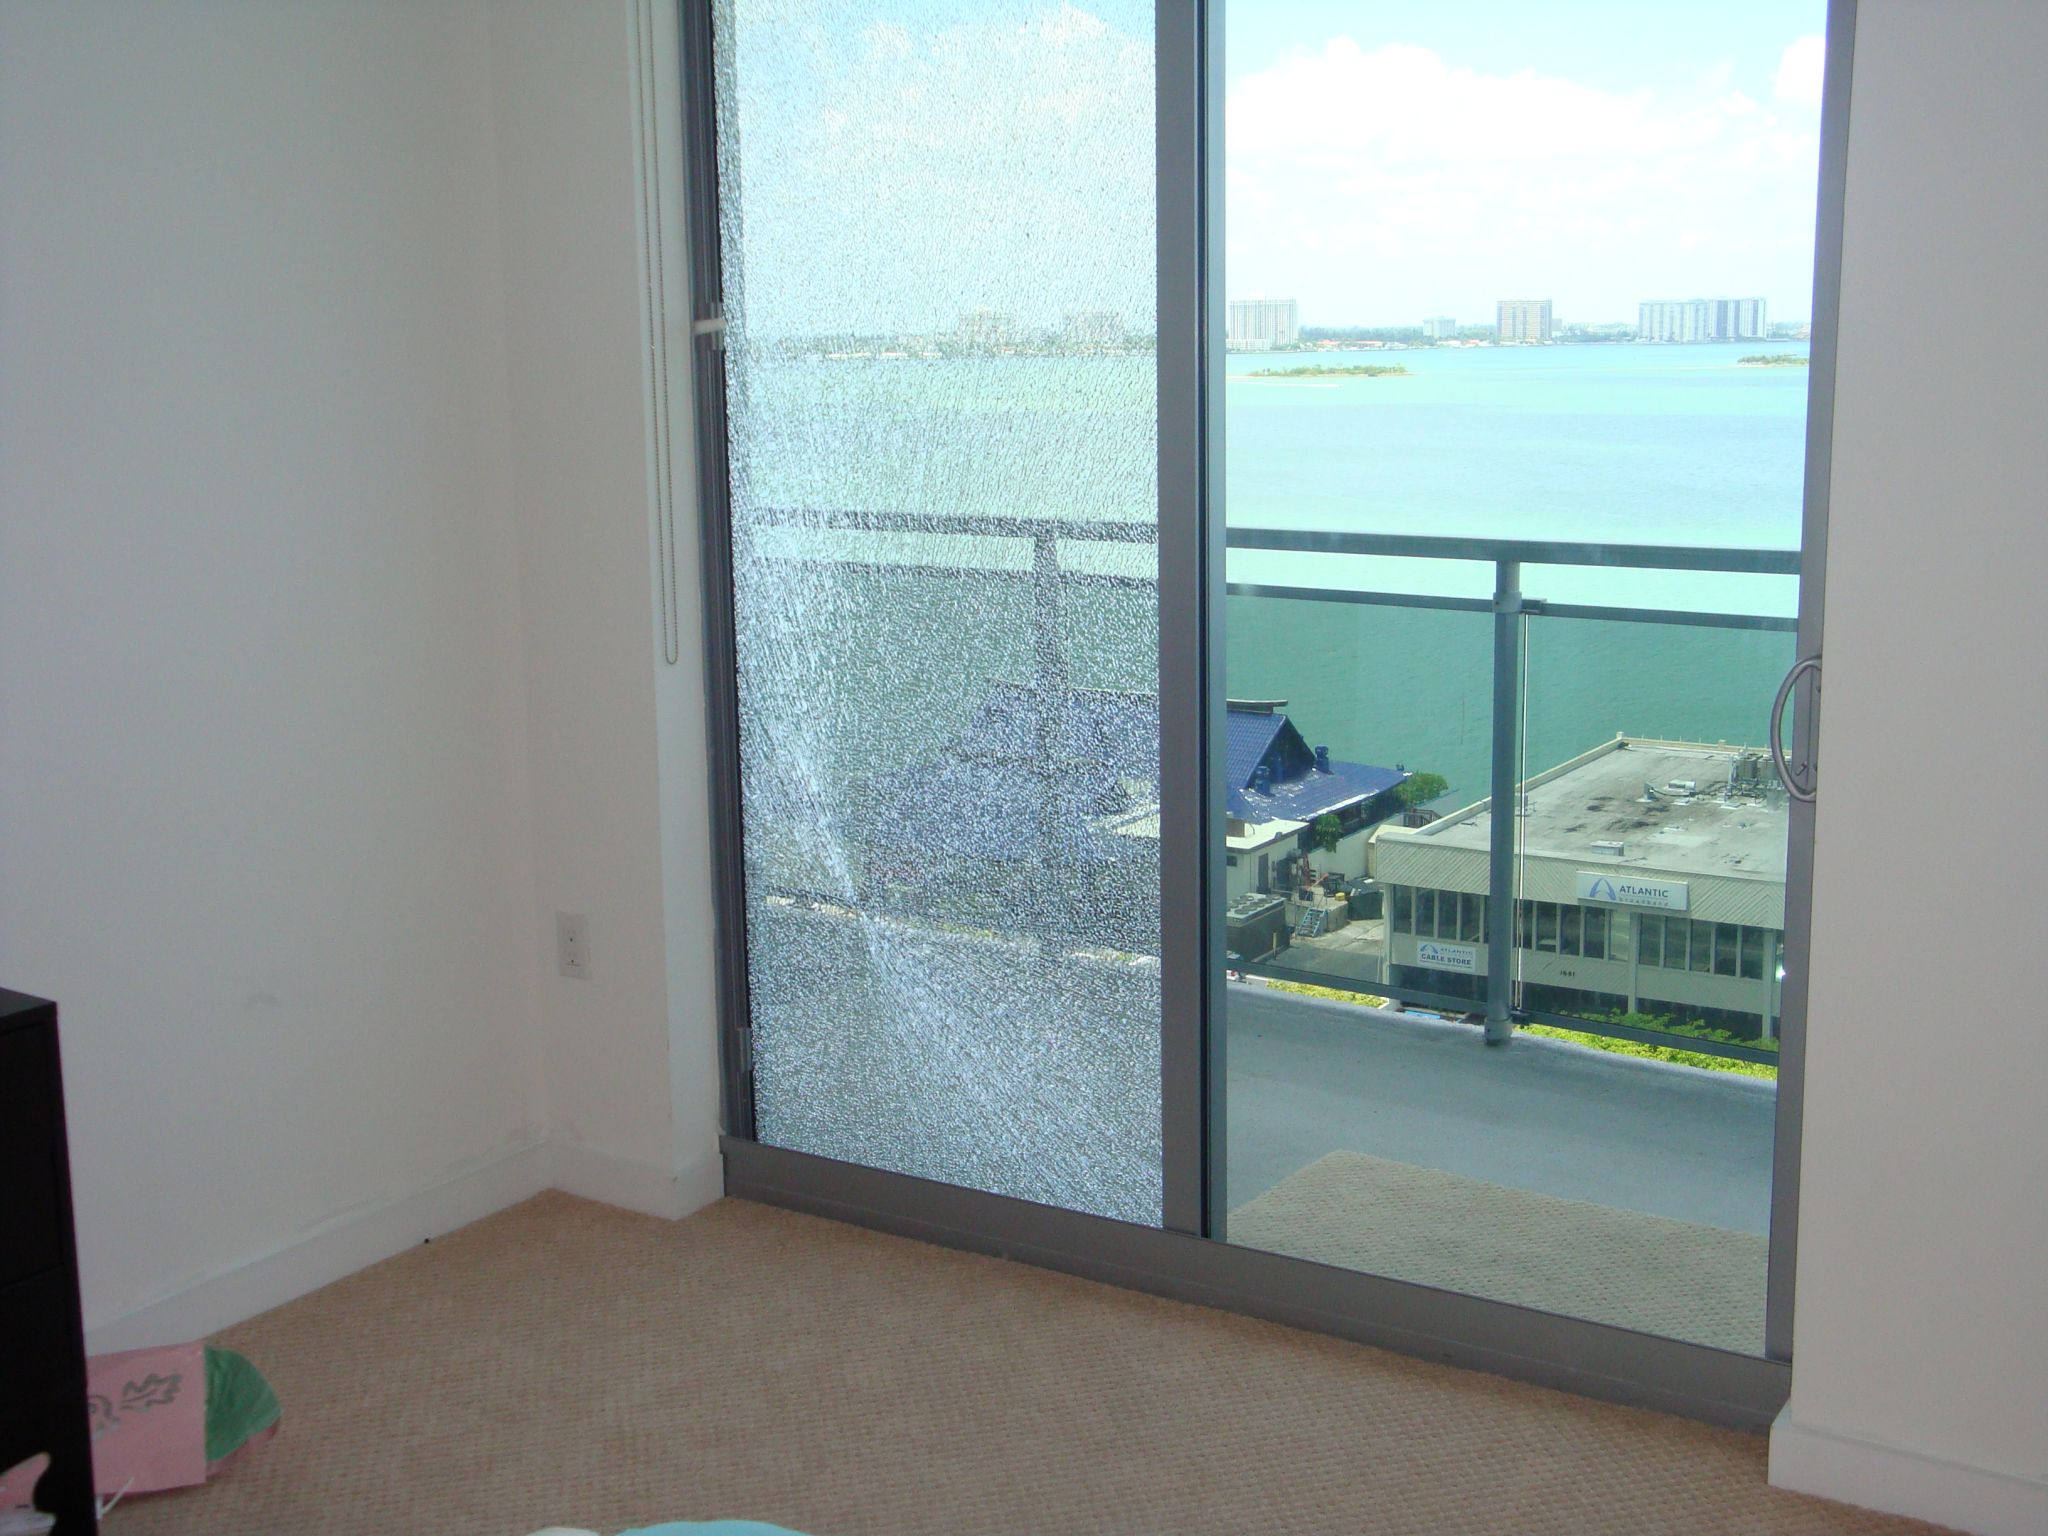 Safety Glazings Are Commonly Required For Sliding Glass Doors, Shower Doors,  And Patio Furniture